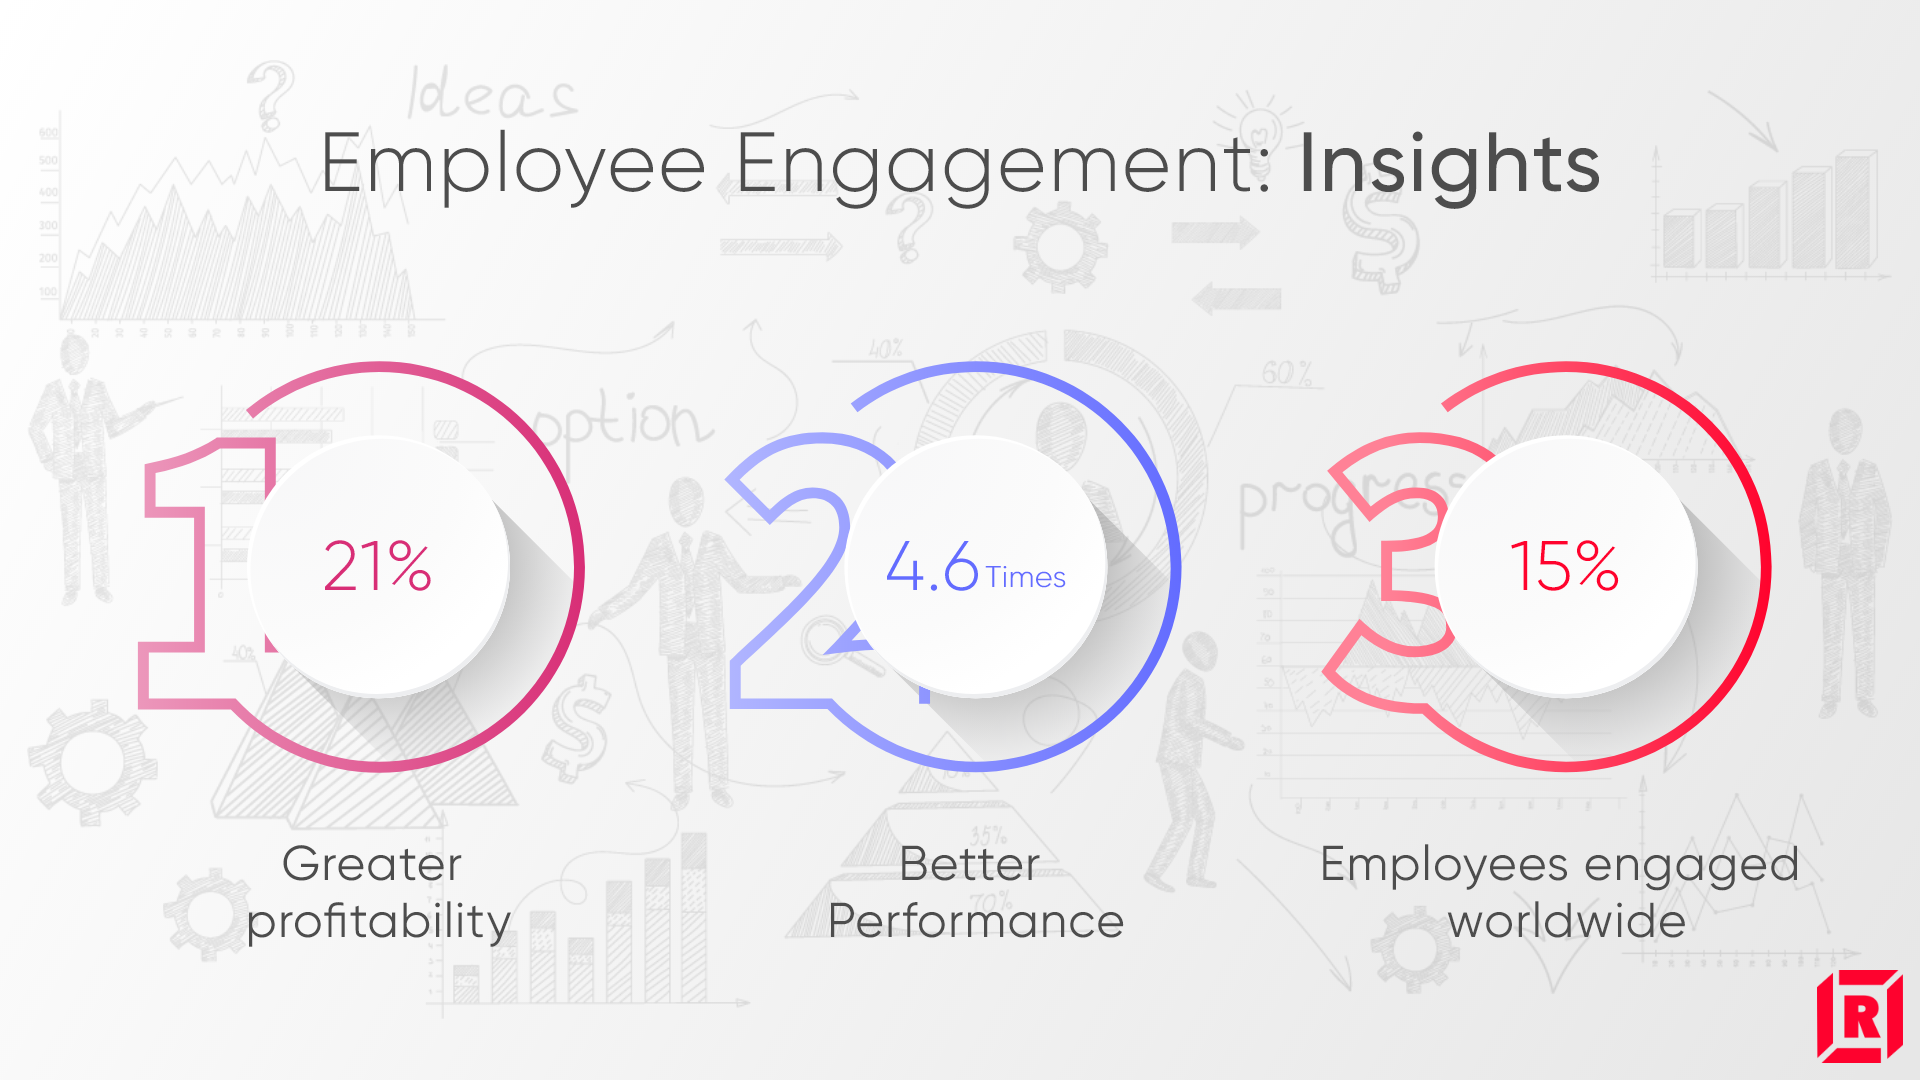 Employee Engagement: Insights